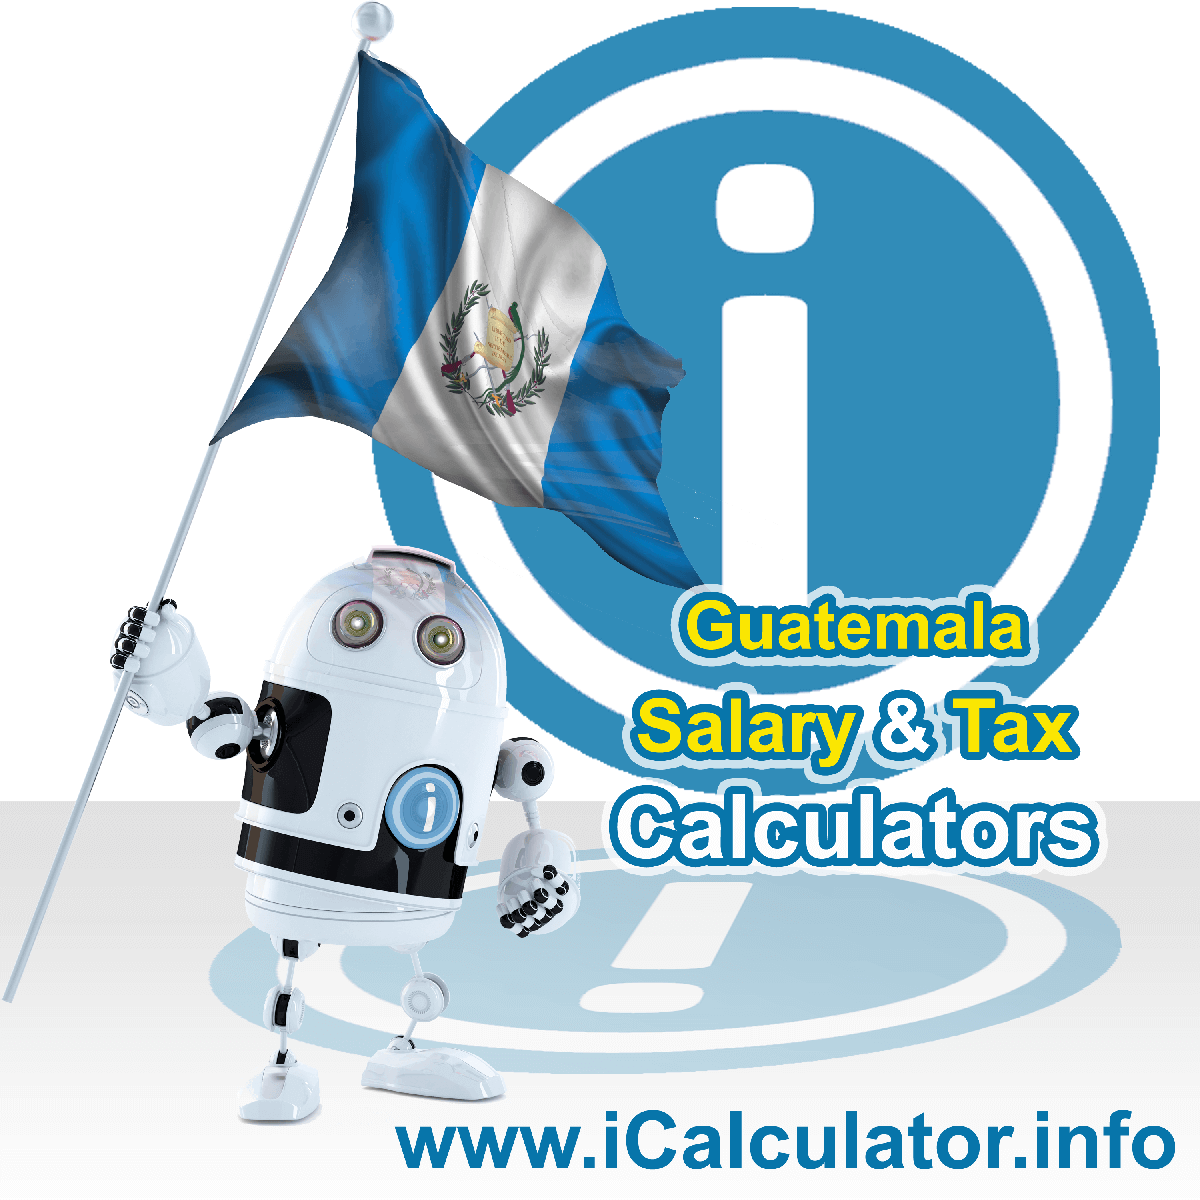 Guatemala Salary Calculator. This image shows the Guatemalaese flag and information relating to the tax formula for the Guatemala Tax Calculator